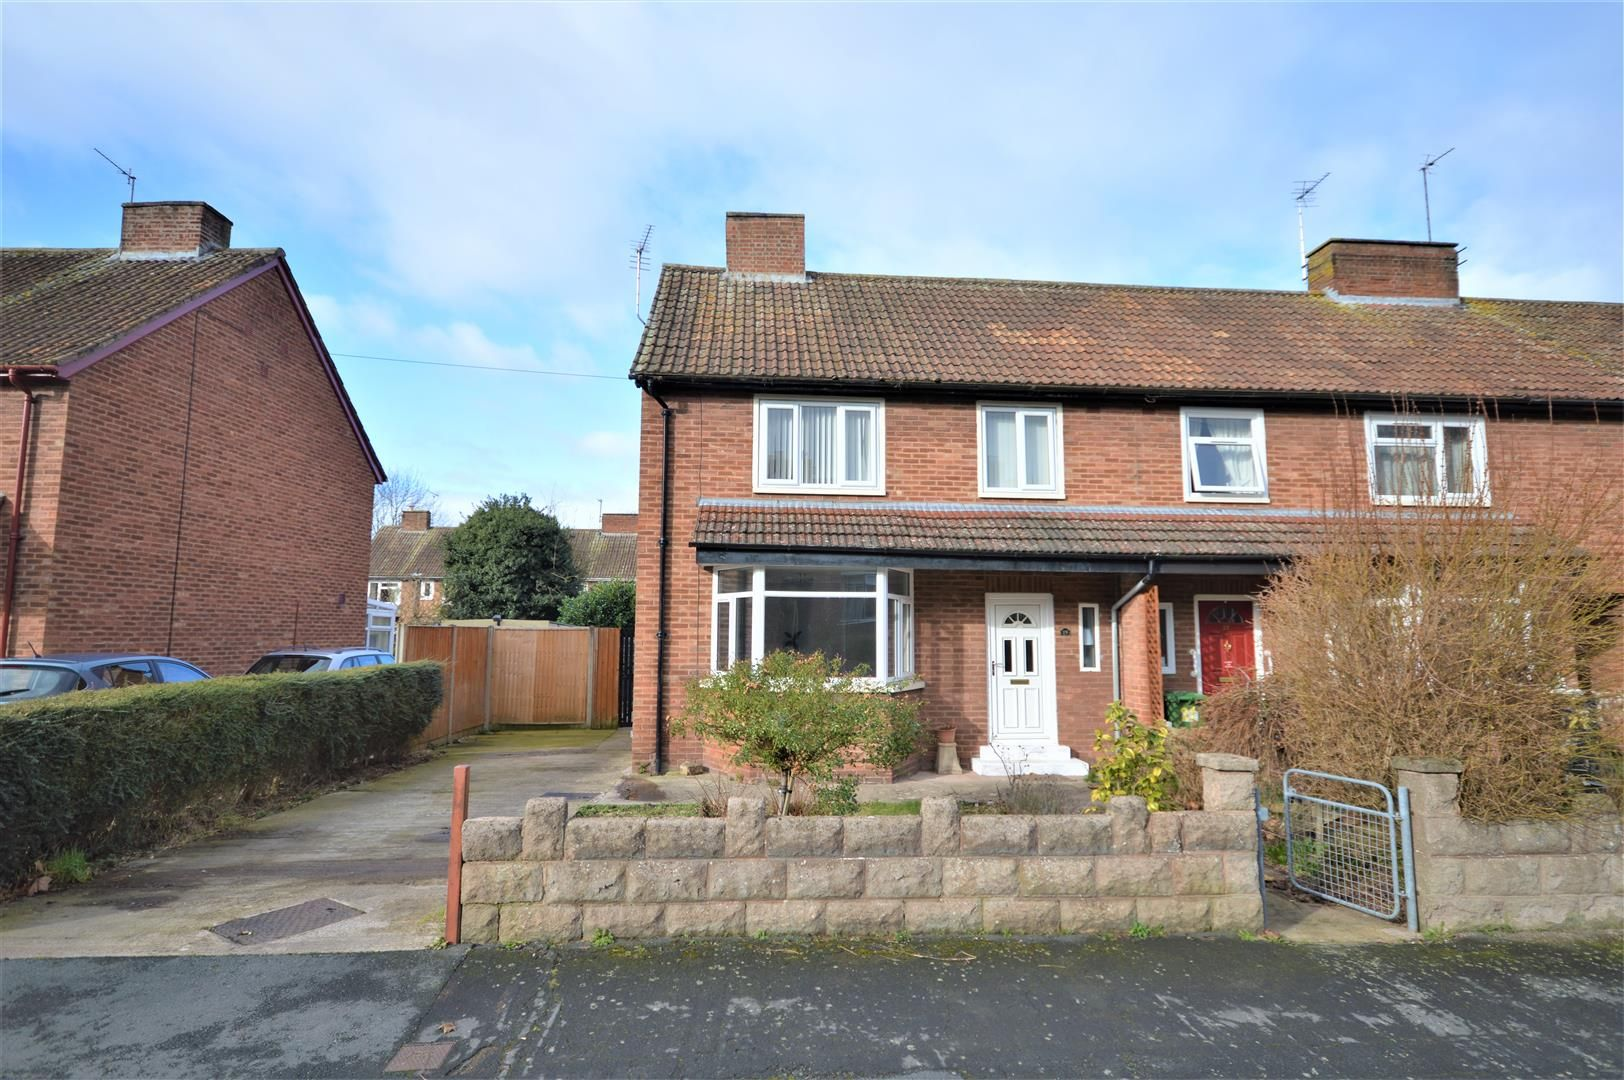 3 bed end-of-terrace for sale in Hereford, HR2